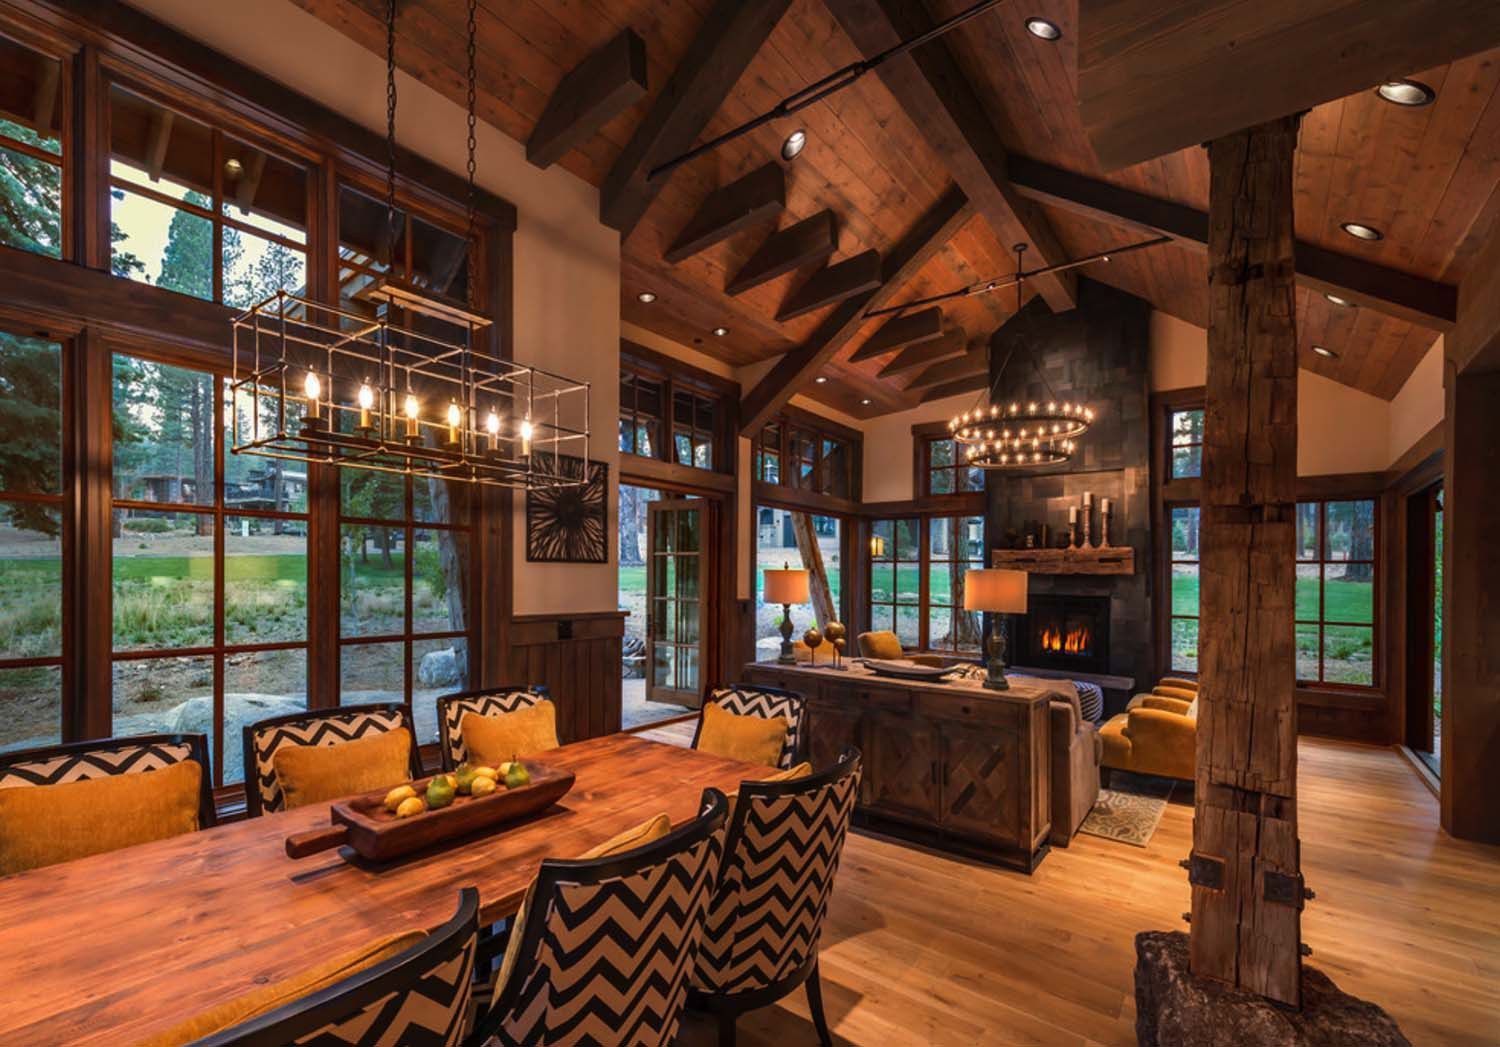 cozy mountain style cabin getaway in martis camp on modern cozy mountain home design ideas id=46209